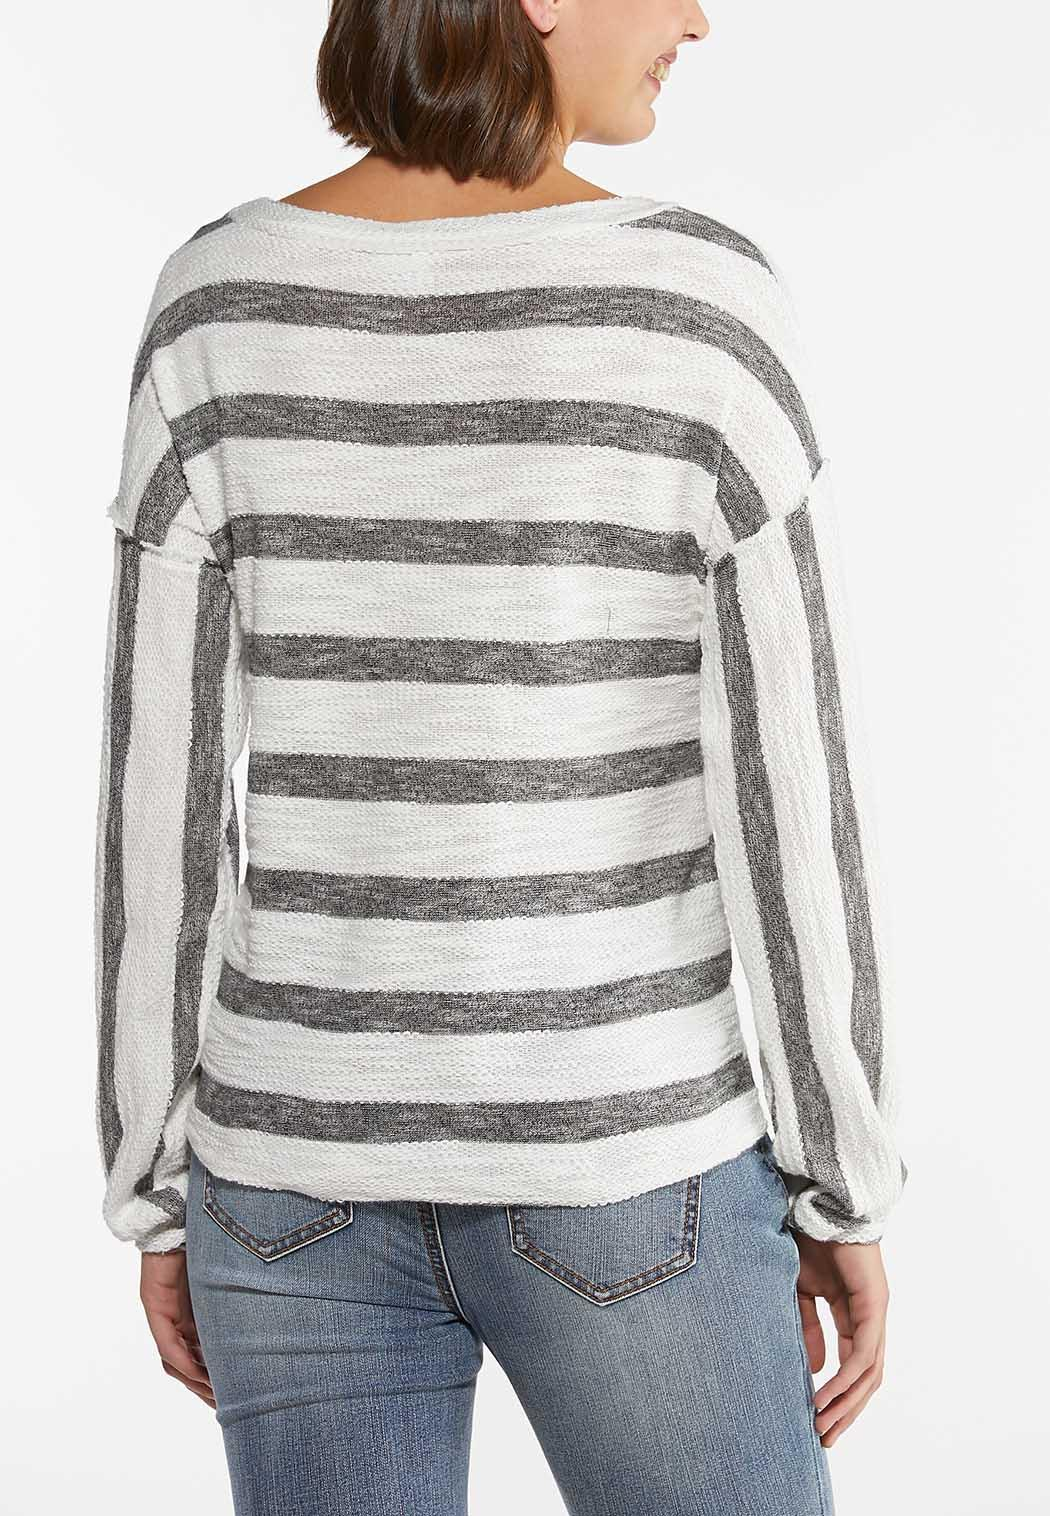 Striped Tie Front Top (Item #44442119)